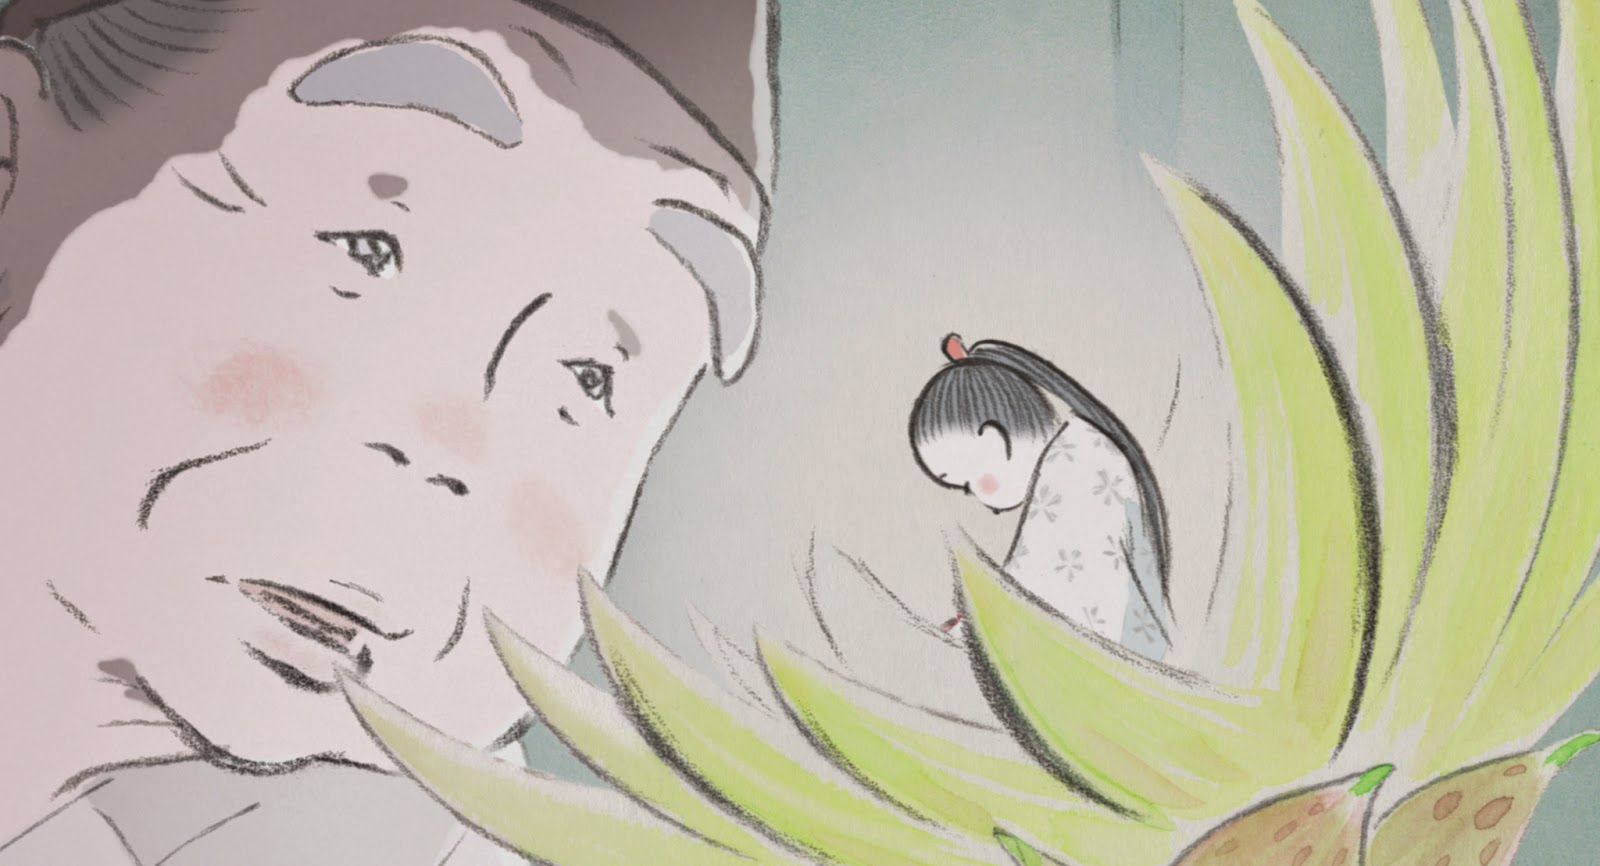 Photos: The Tale of the Princess Kaguya